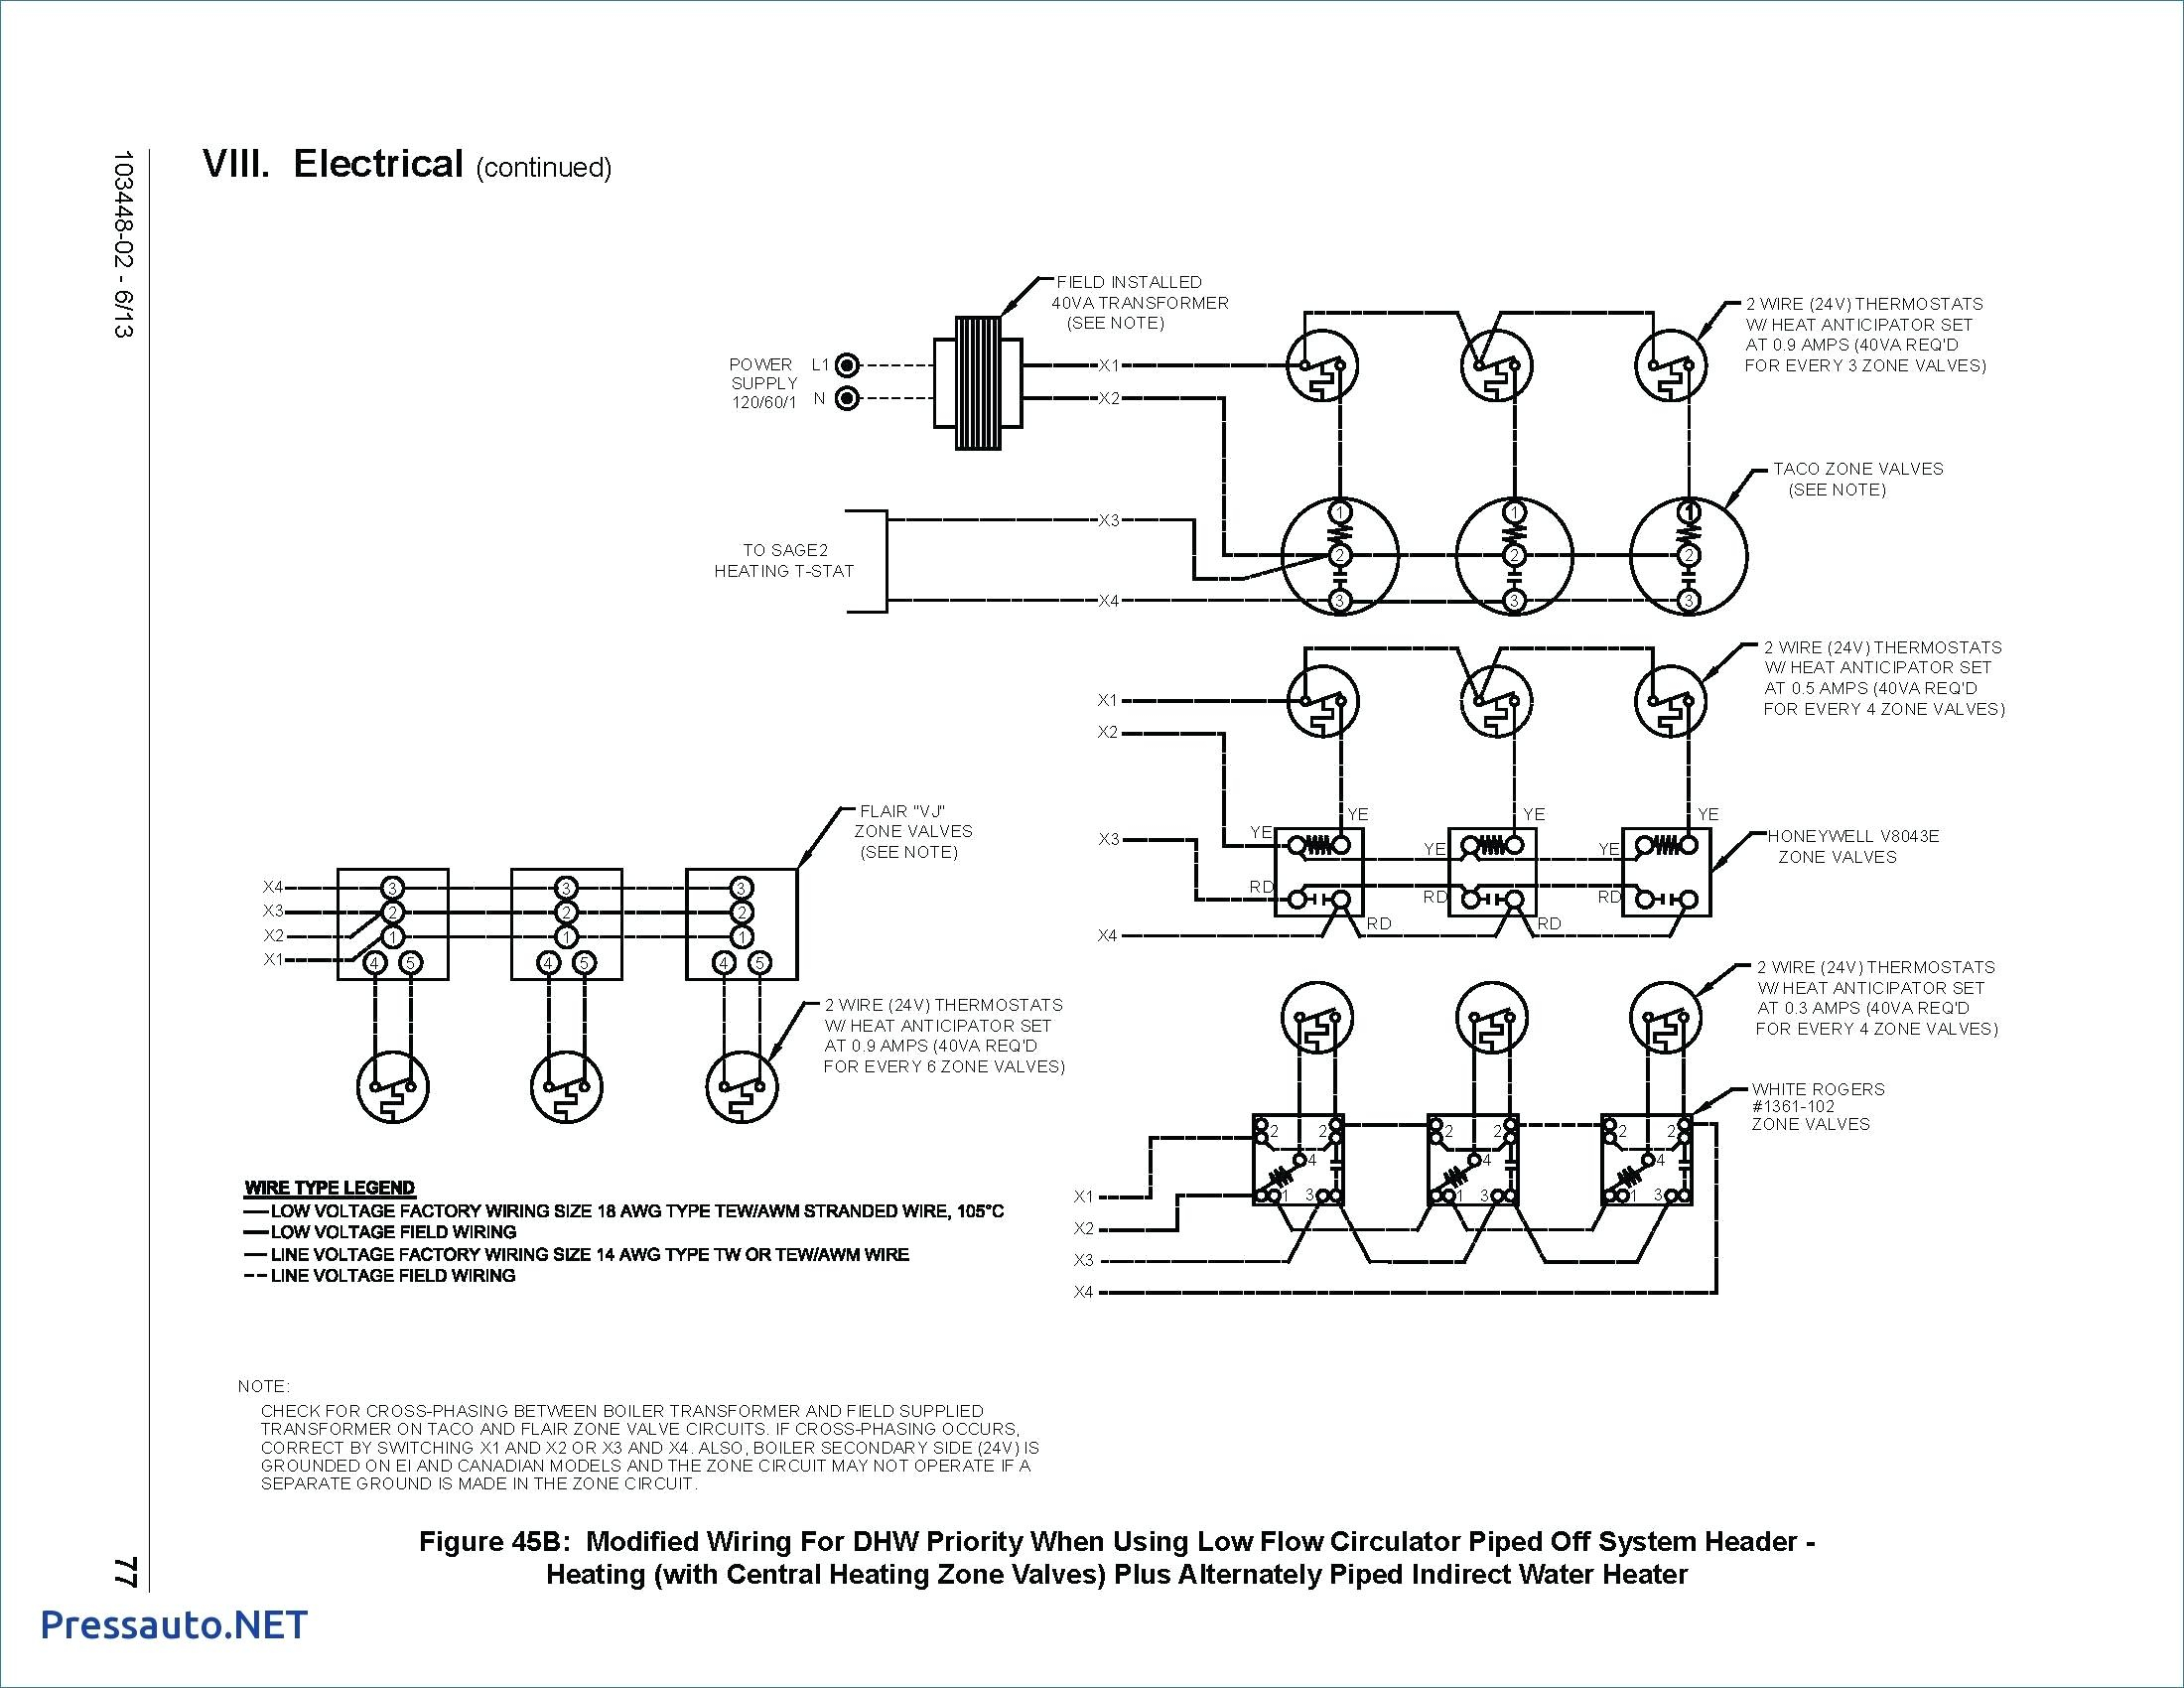 Taco 006 B4 Wiring Diagram Download Wiring Collection